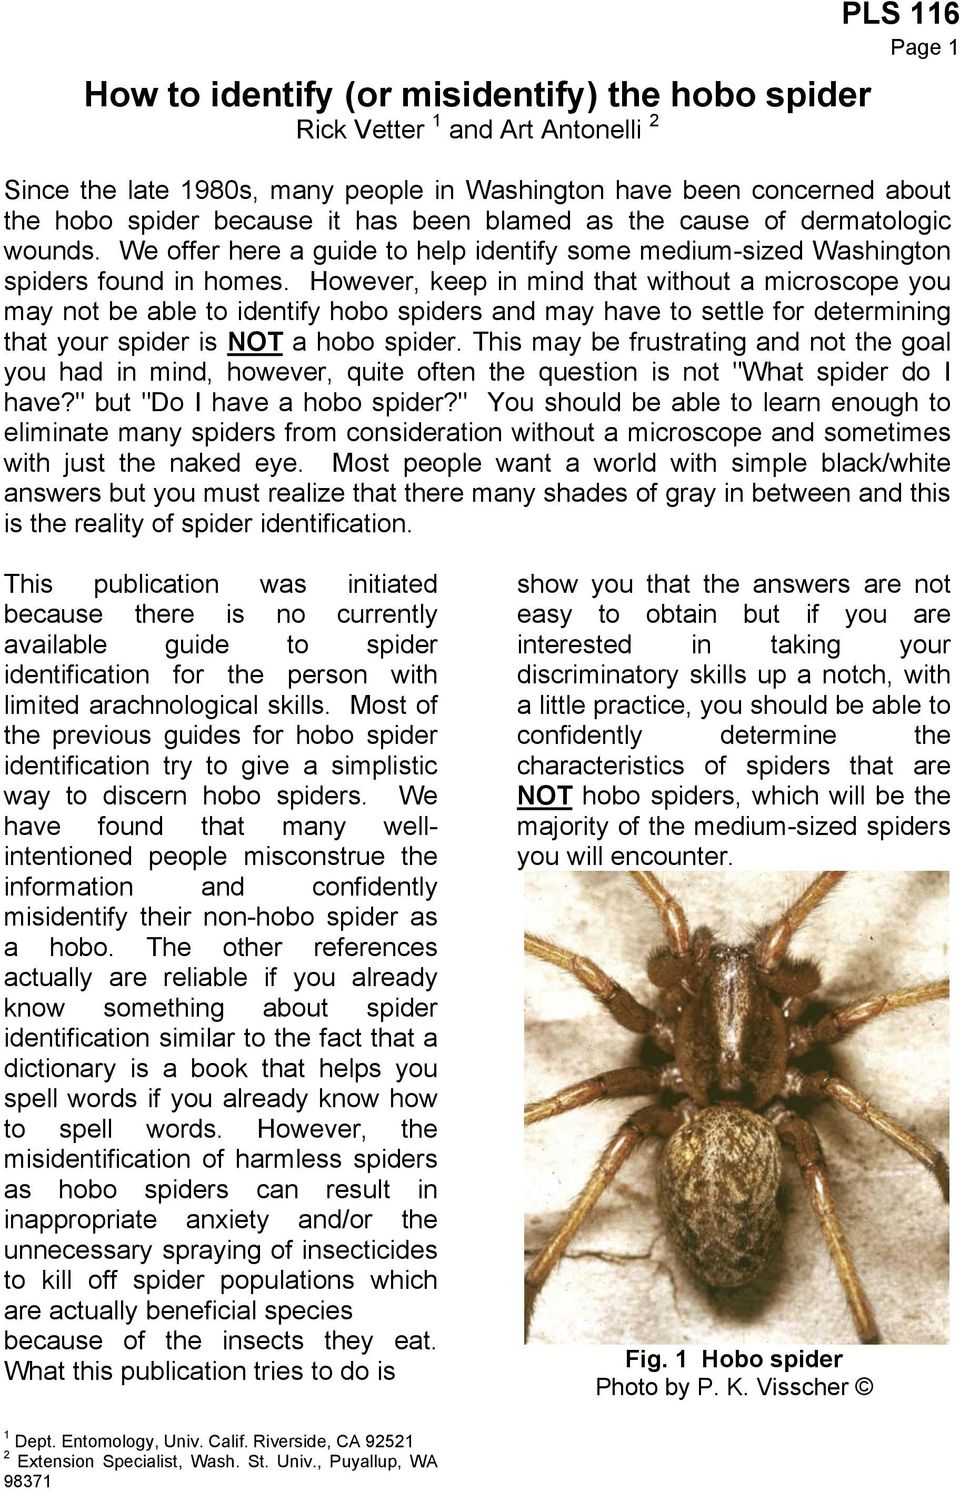 However, keep in mind that without a microscope you may not be able to identify hobo spiders and may have to settle for determining that your spider is NOT a hobo spider.